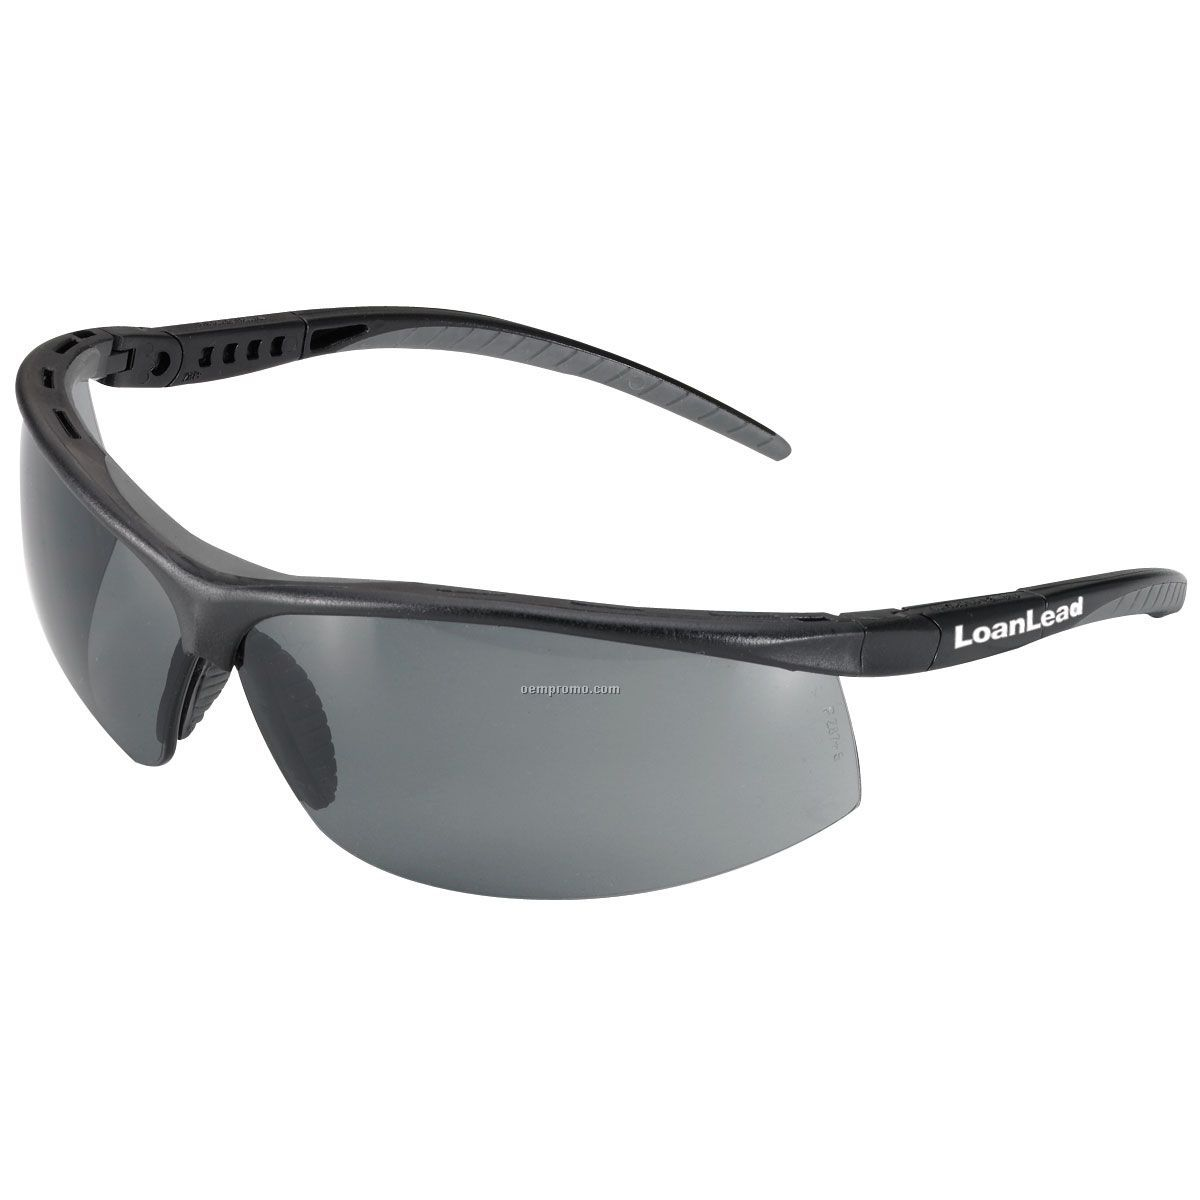 Black Frame Safety Glasses : Pyramex Pacifica Black Frame Safety Glasses,China ...